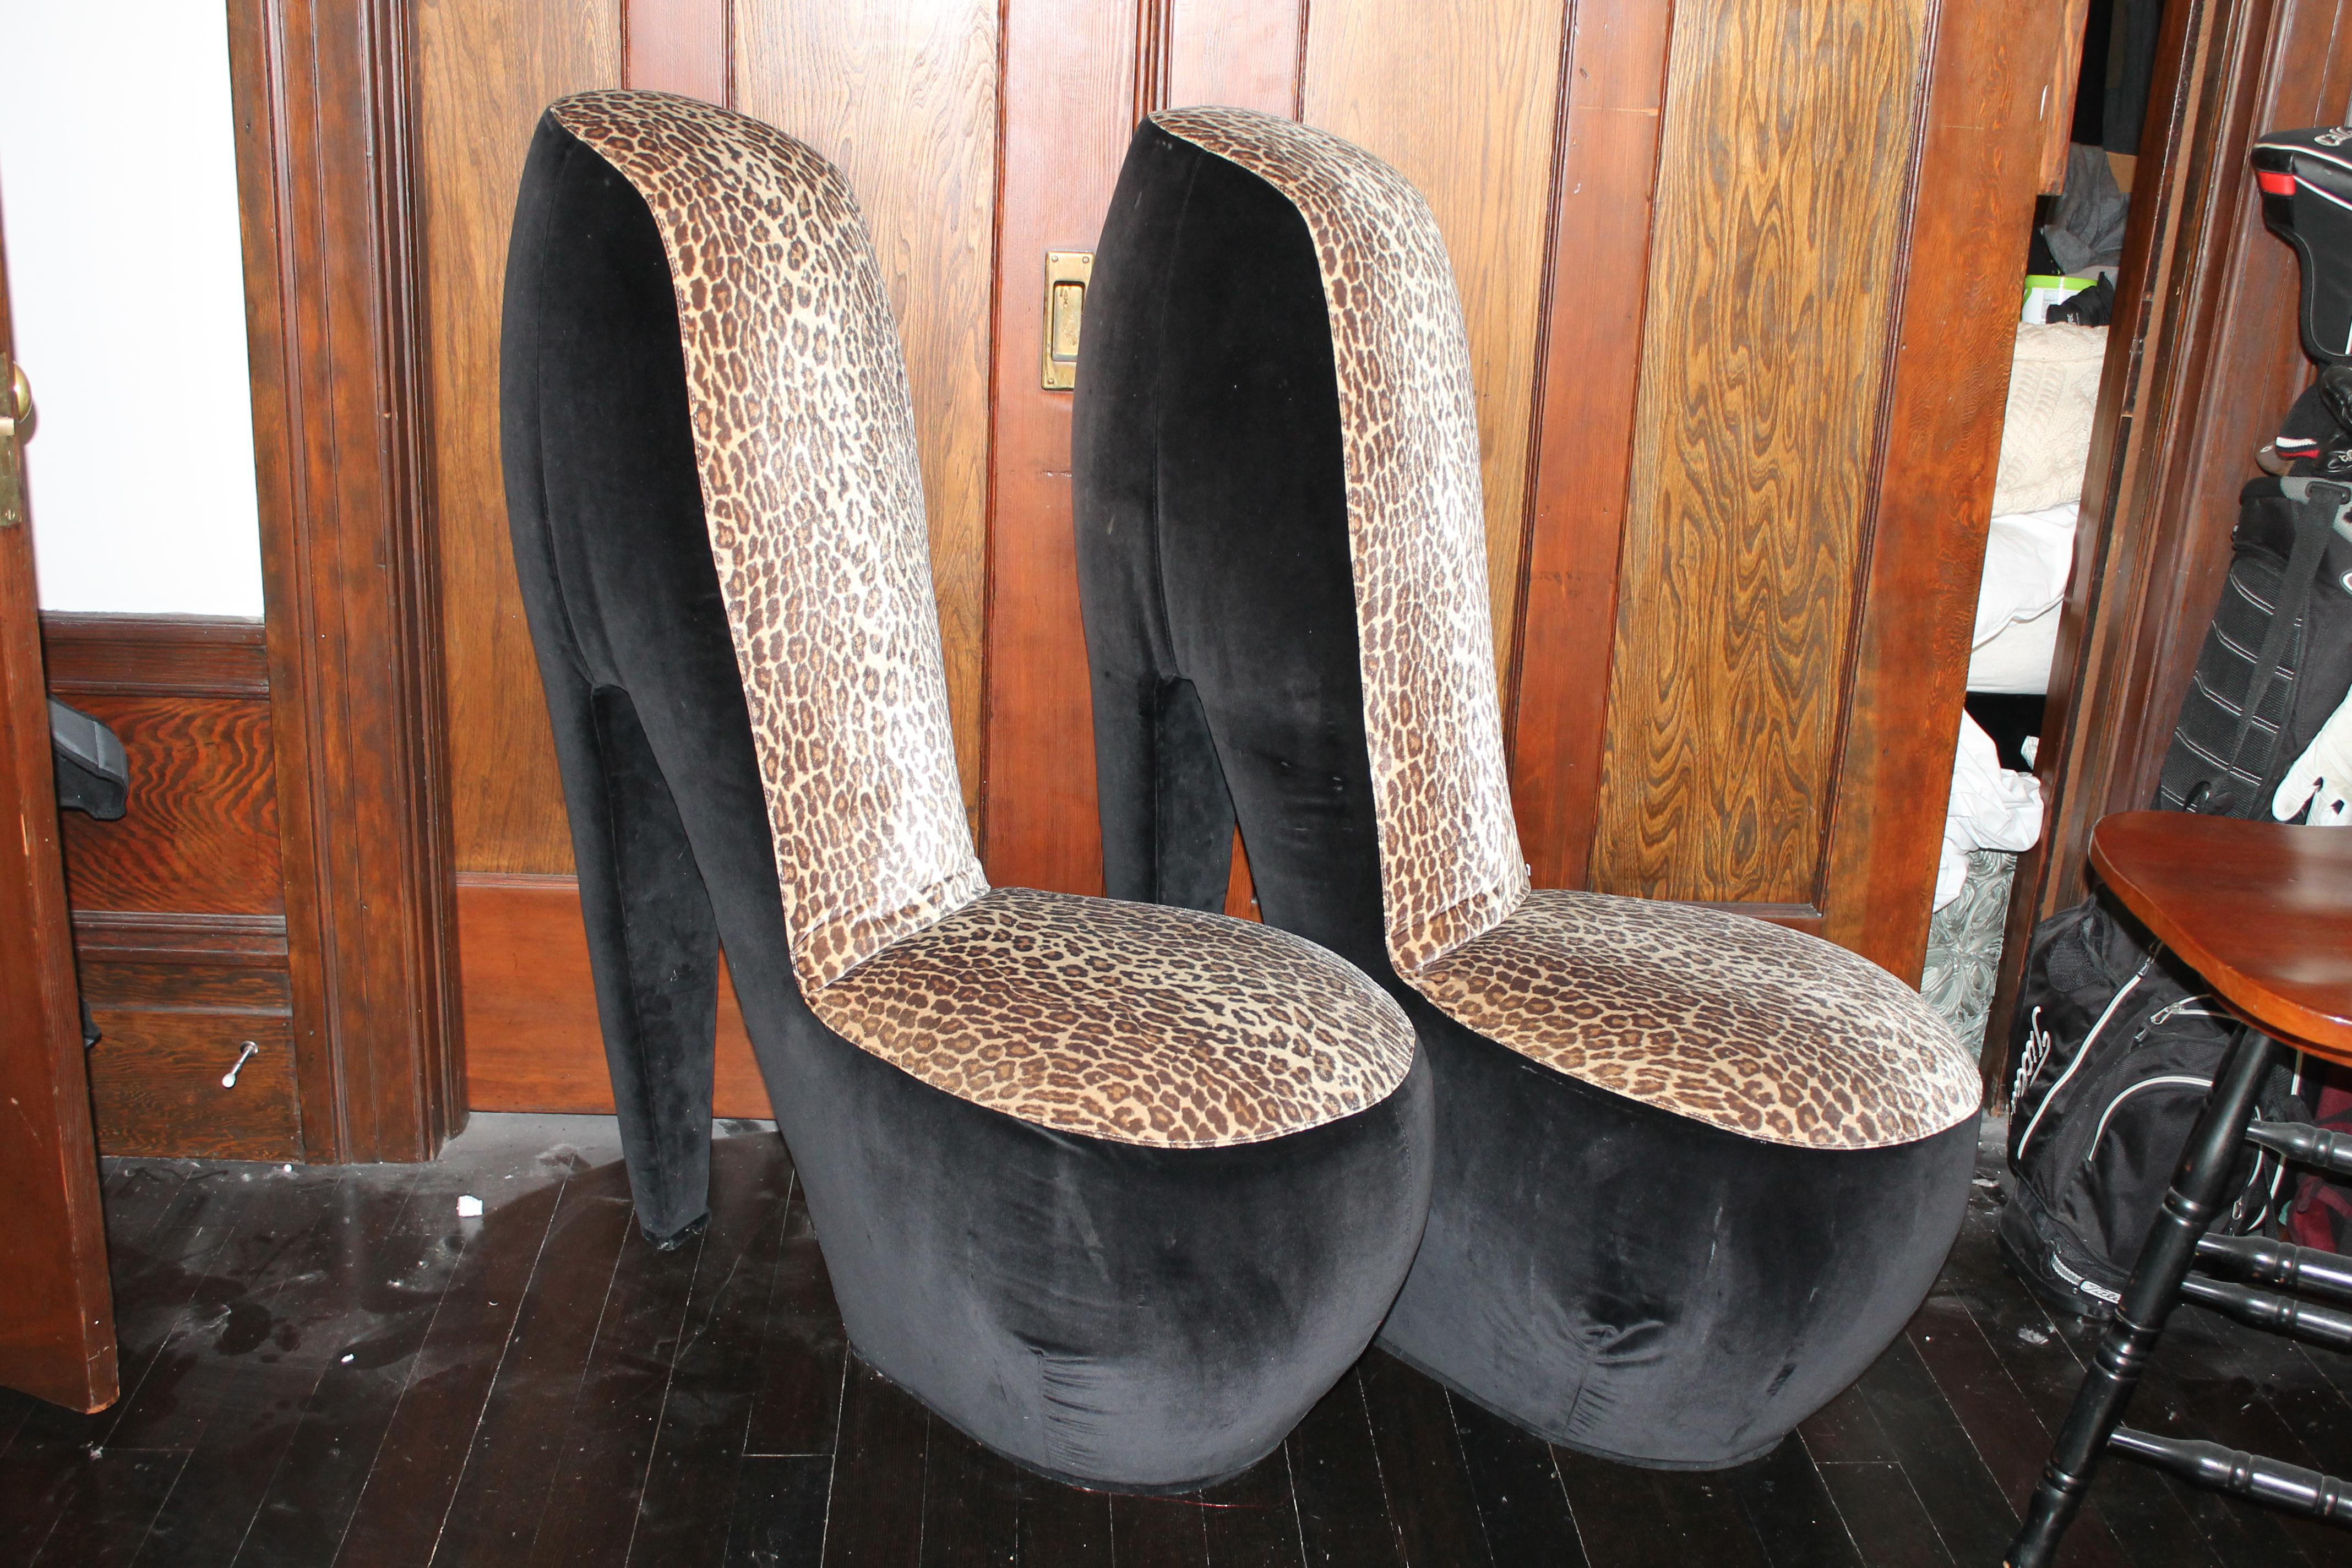 Leopard Print High Heel Shoe Chairs   A Pair   Image 2 Of 8